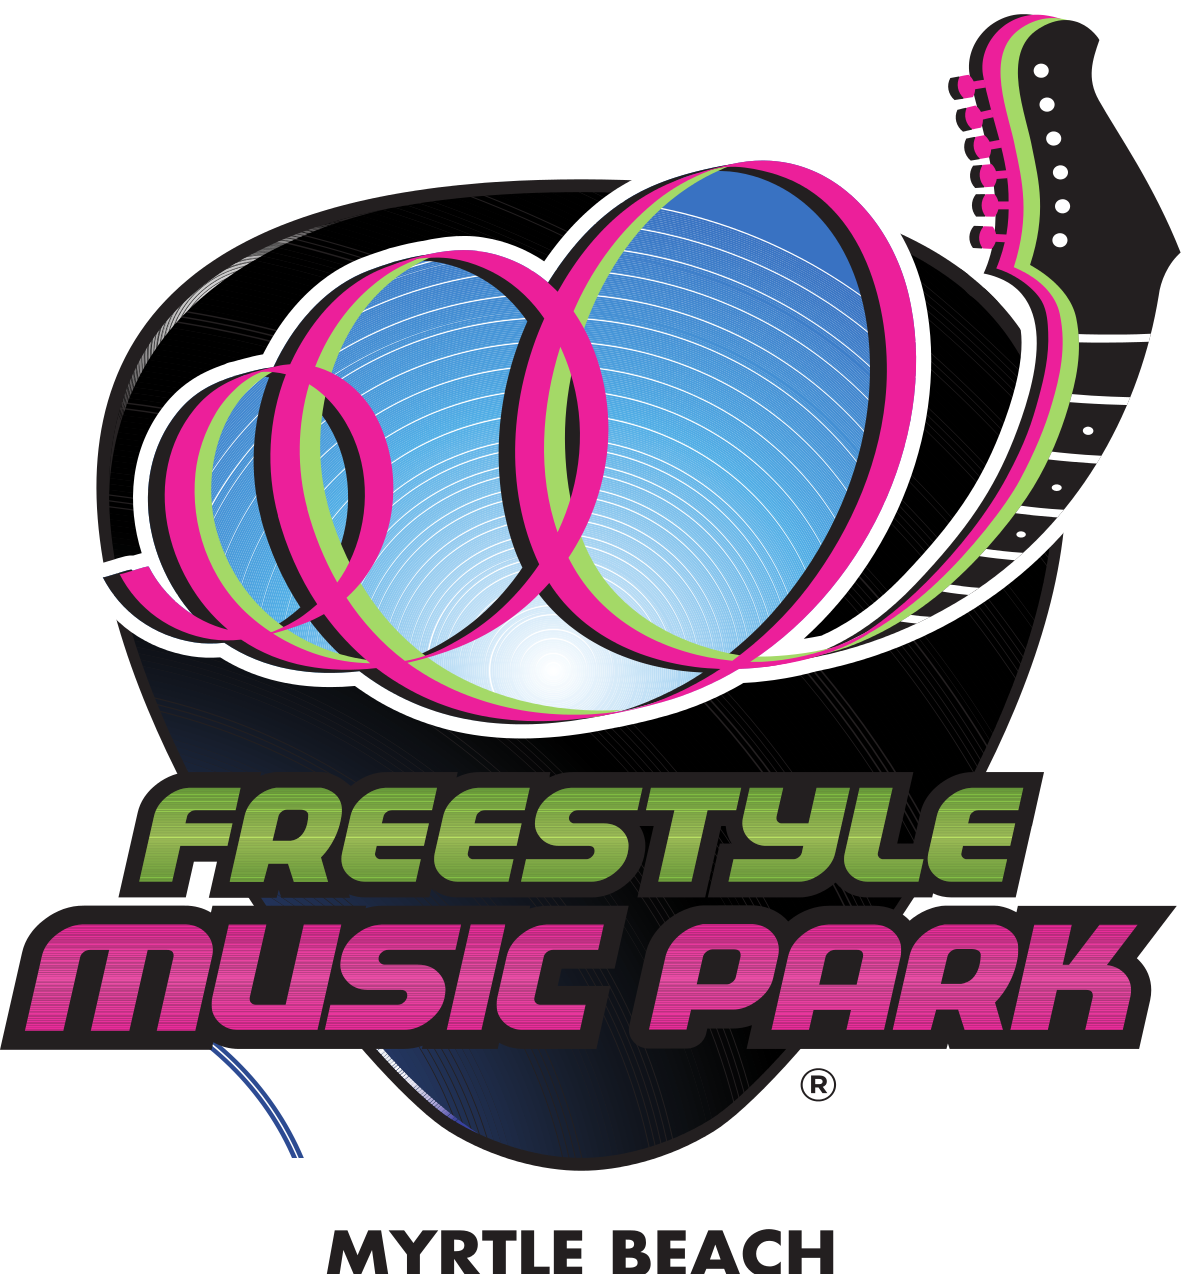 clipart download Freestyle music park wikipedia. Mall clipart mall manager.